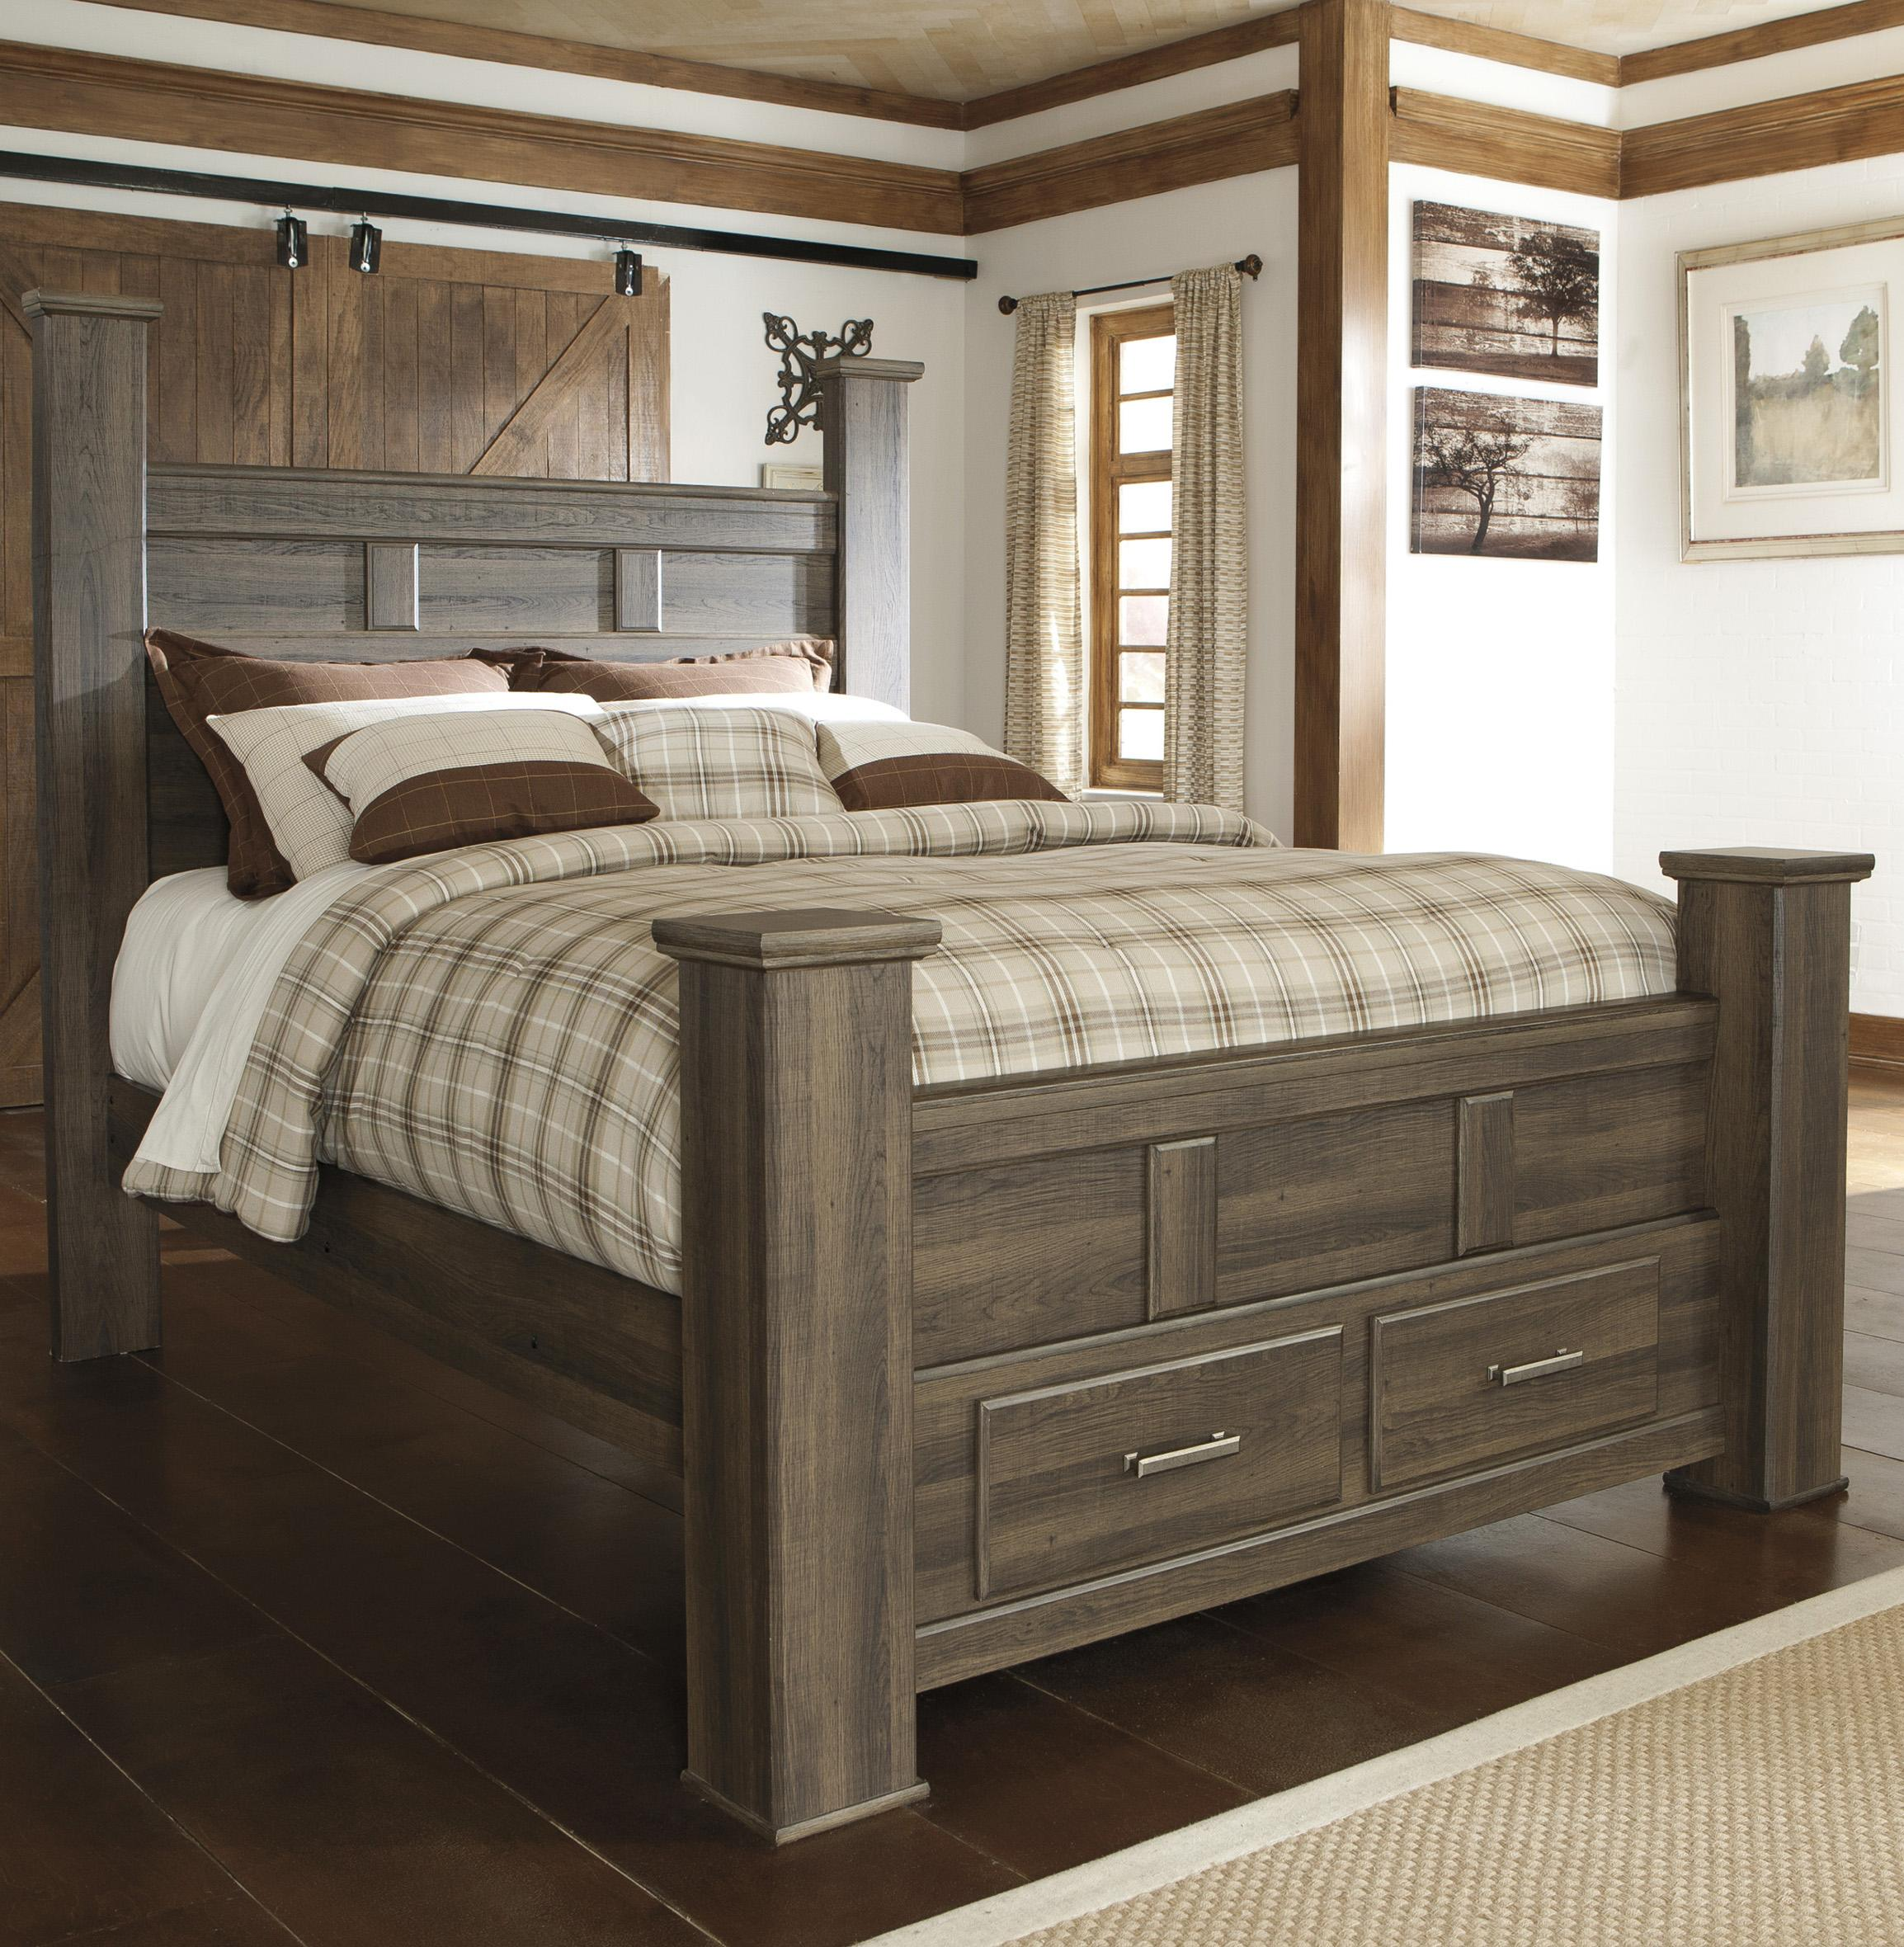 Signature Design By Ashley Juararo Transitional Queen Poster Bed With Footboard Storage Del